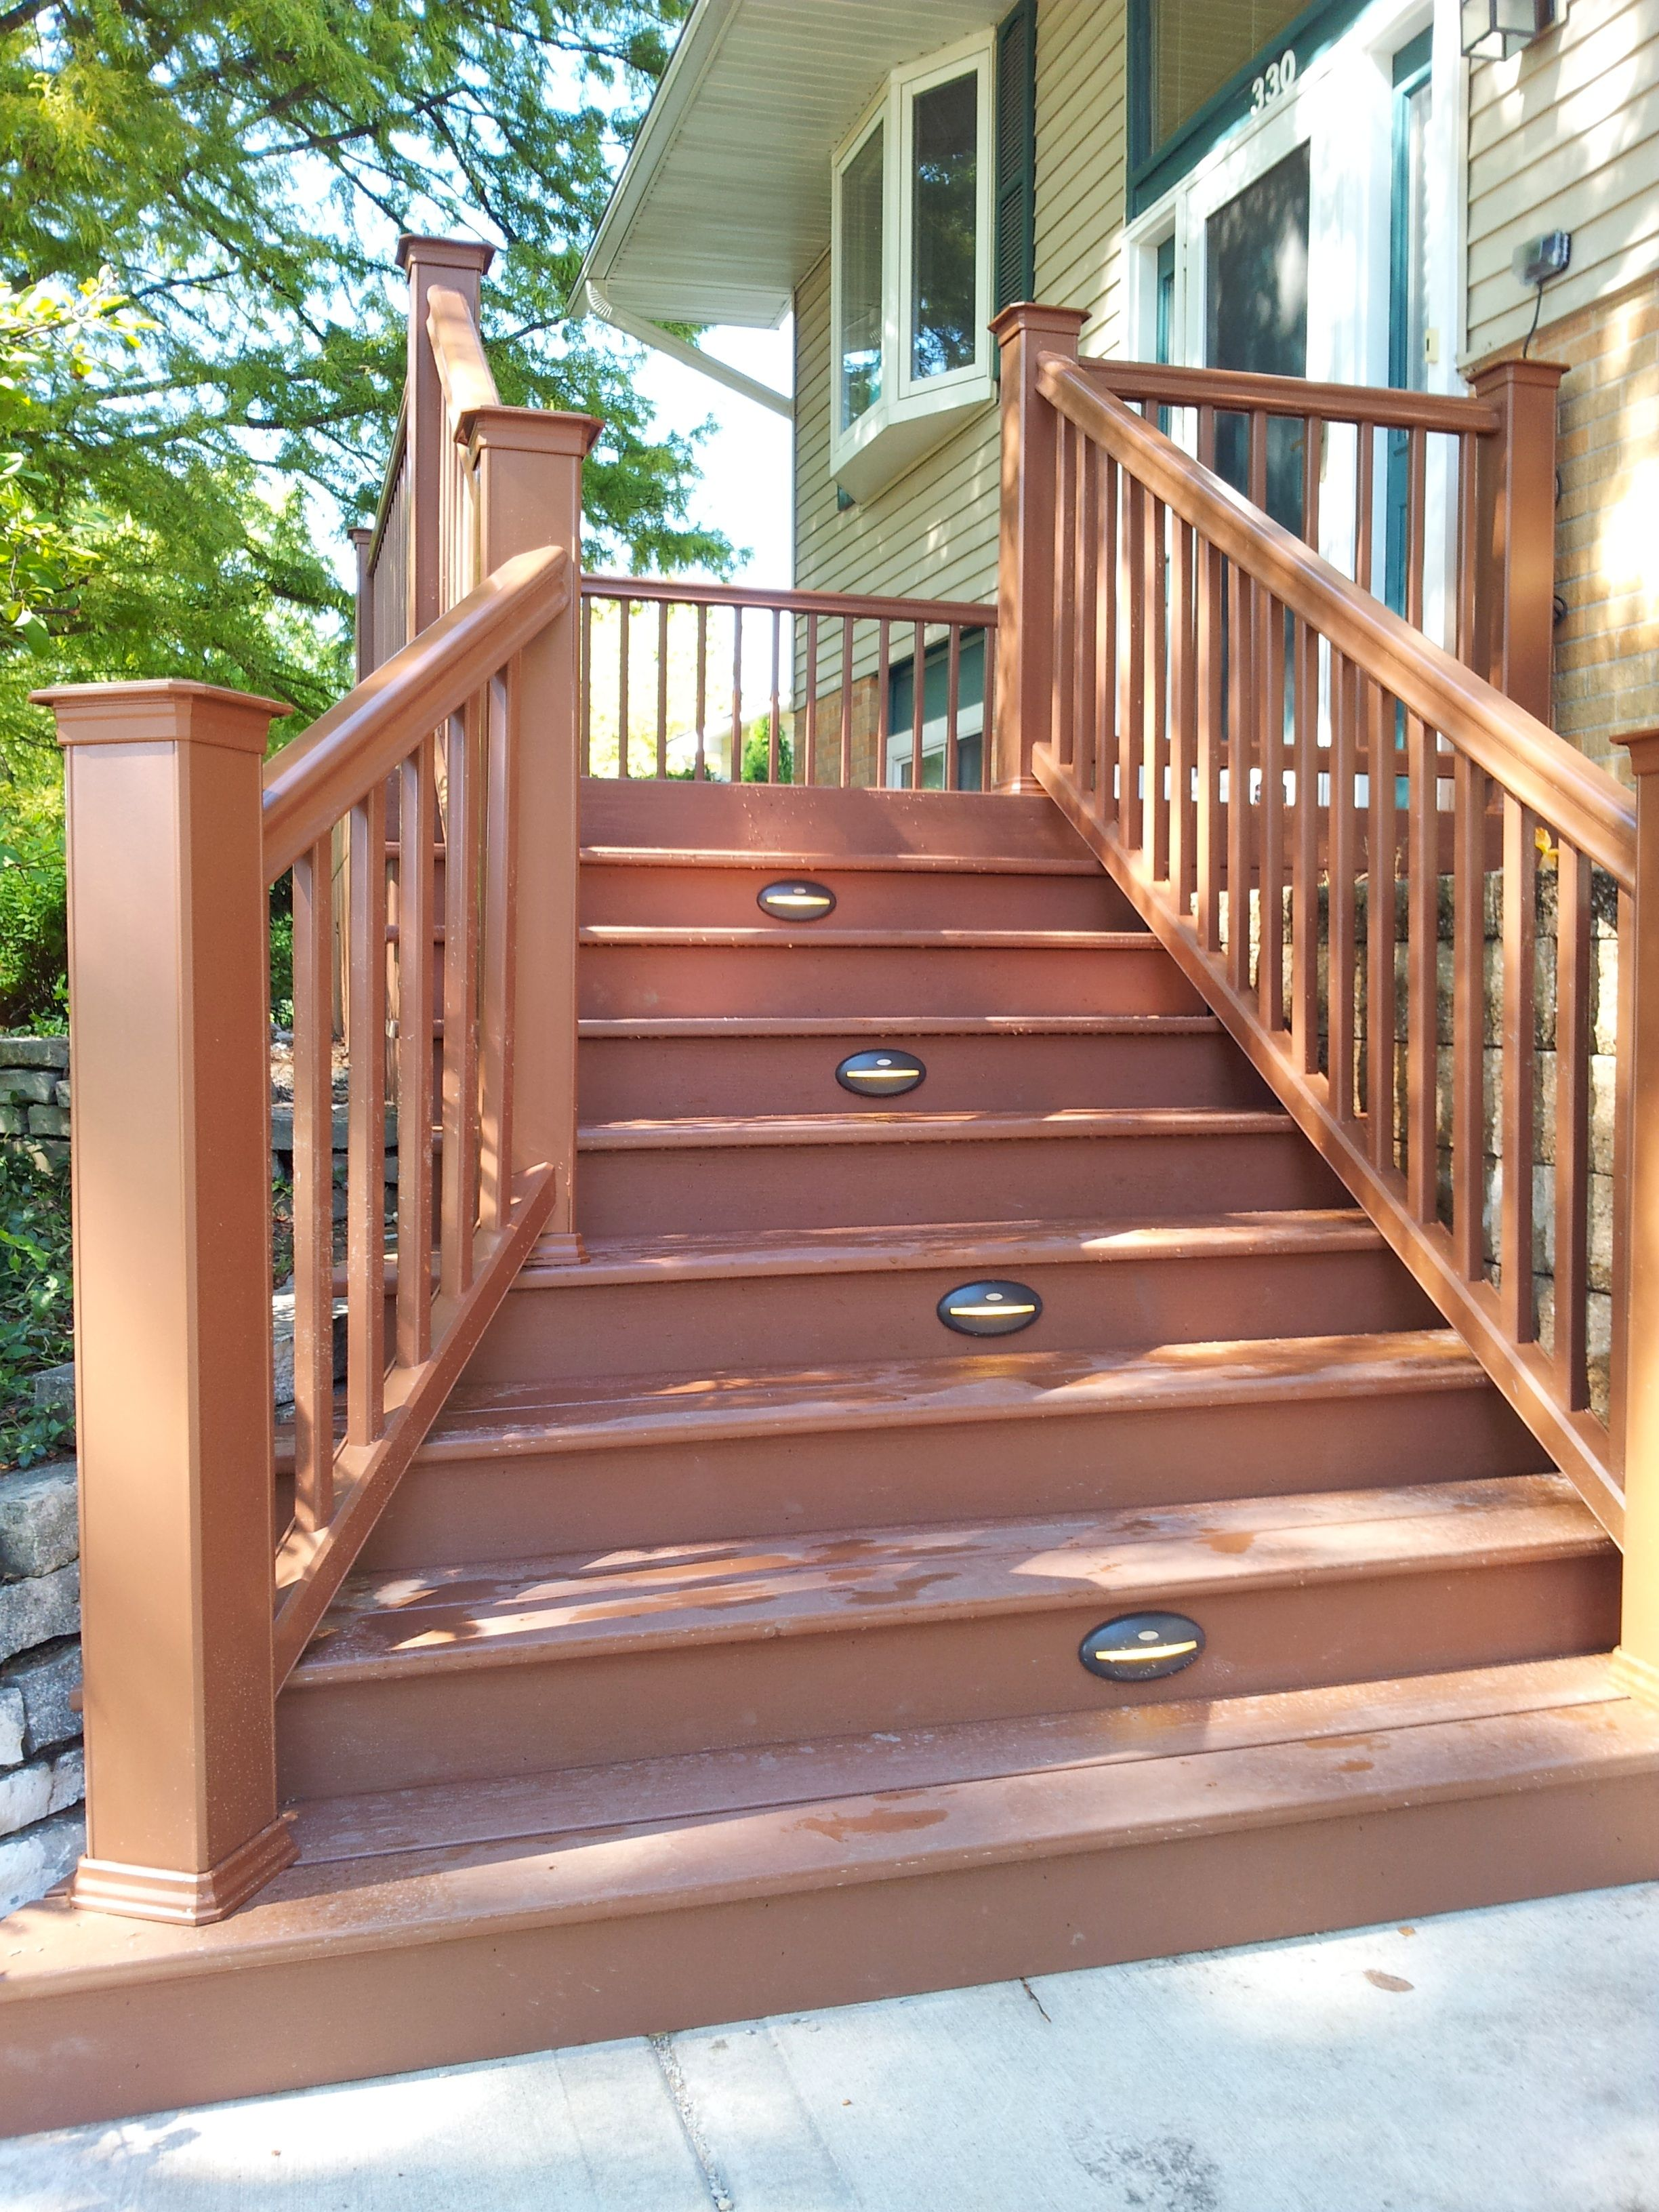 Timbertech Stairs Created By Backyard Images Mountain Cedar Color With Riser Lights Backyard Deck Stairs Cedar Deck